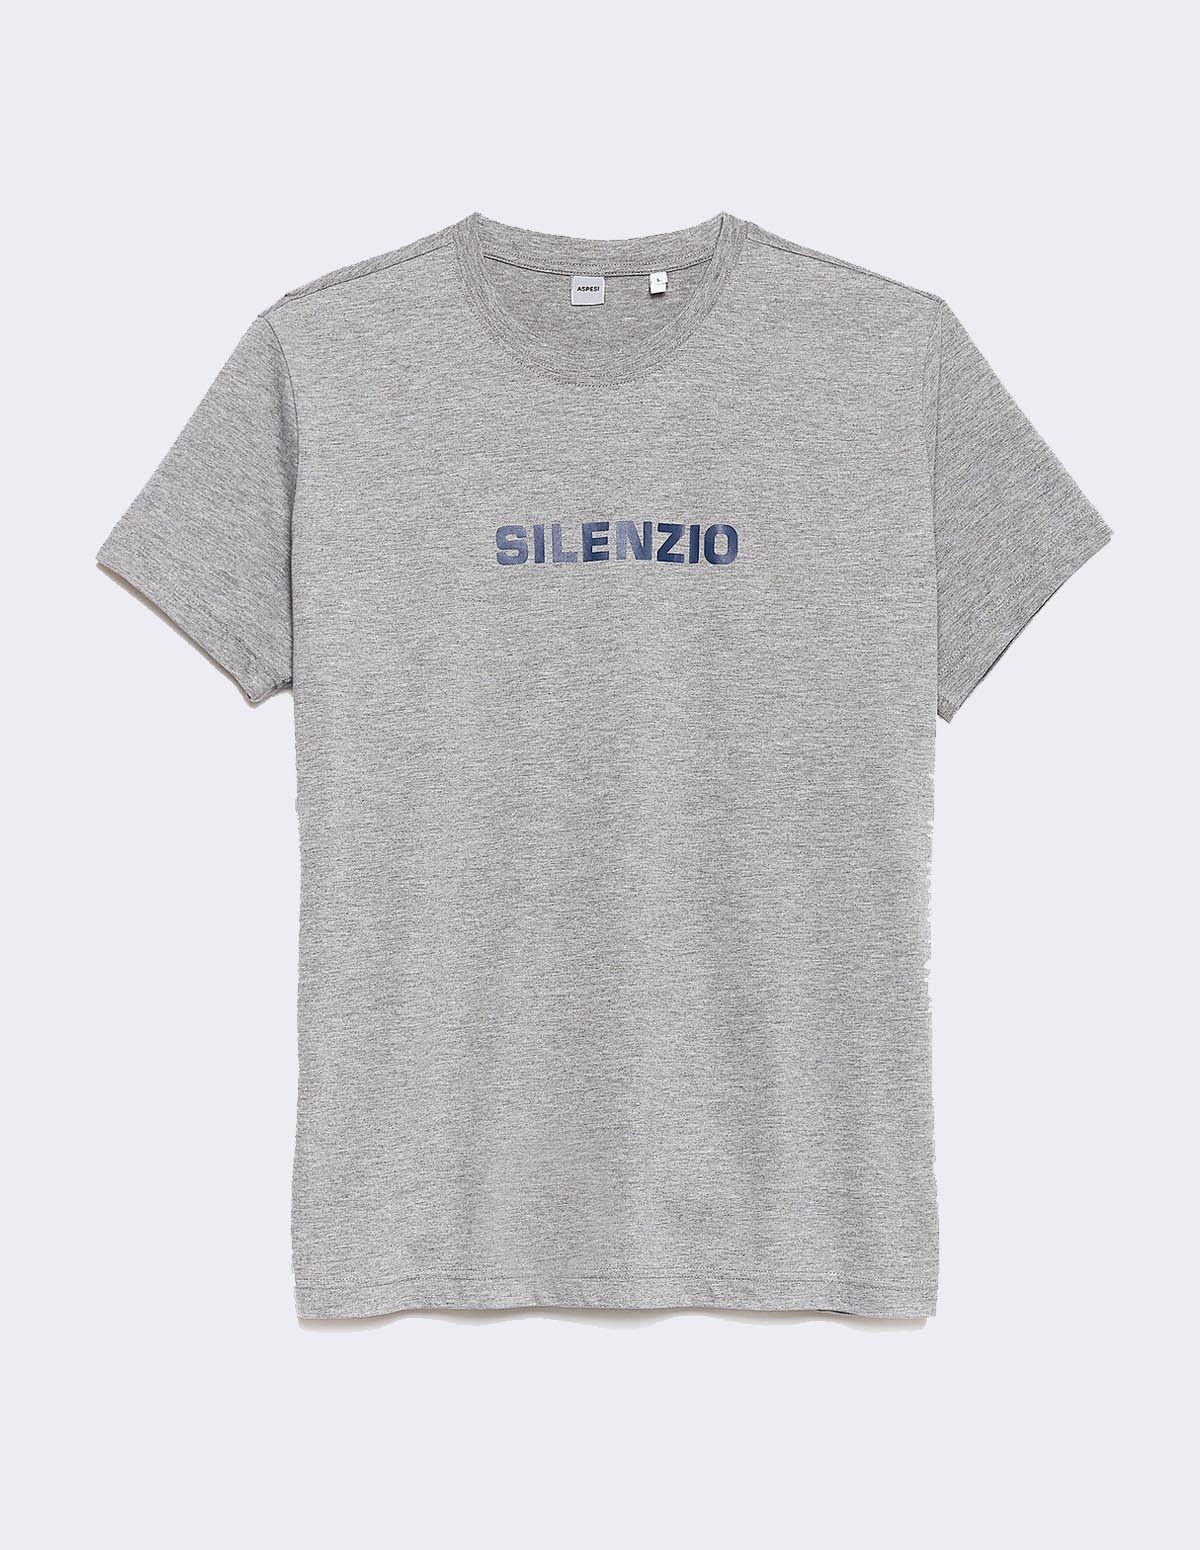 Aspesi T-shirt Silenzio - MEDIUM GREY